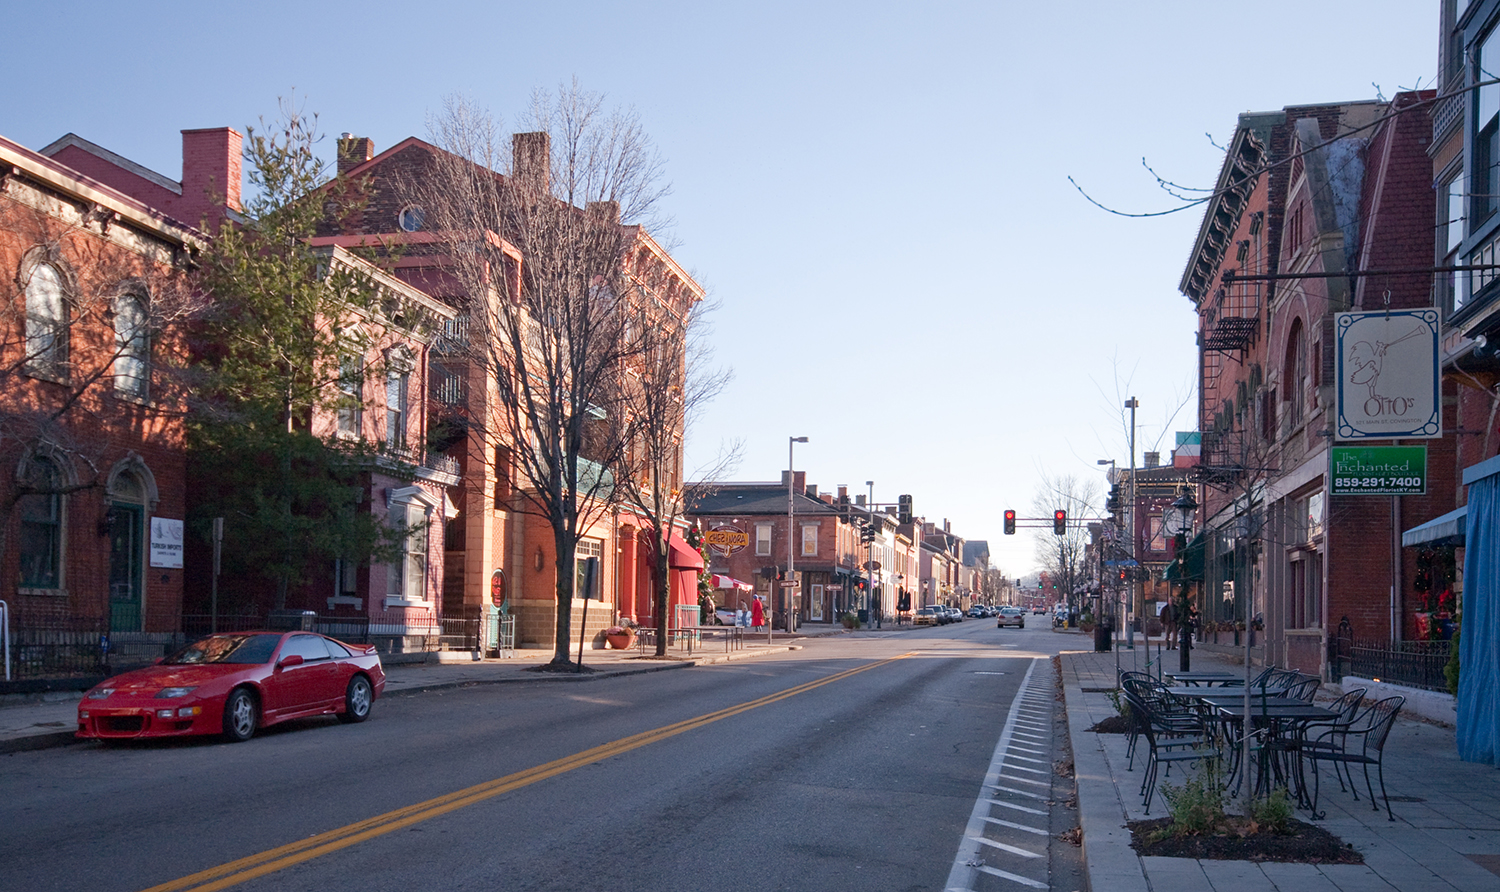 Main Strasse in the historic district of Covington, Ky., across the Ohio River from Cincinnati. Photo by Greg Hume. This file is licensed under the Creative Commons Attribution-Share Alike 3.0 Unported license.